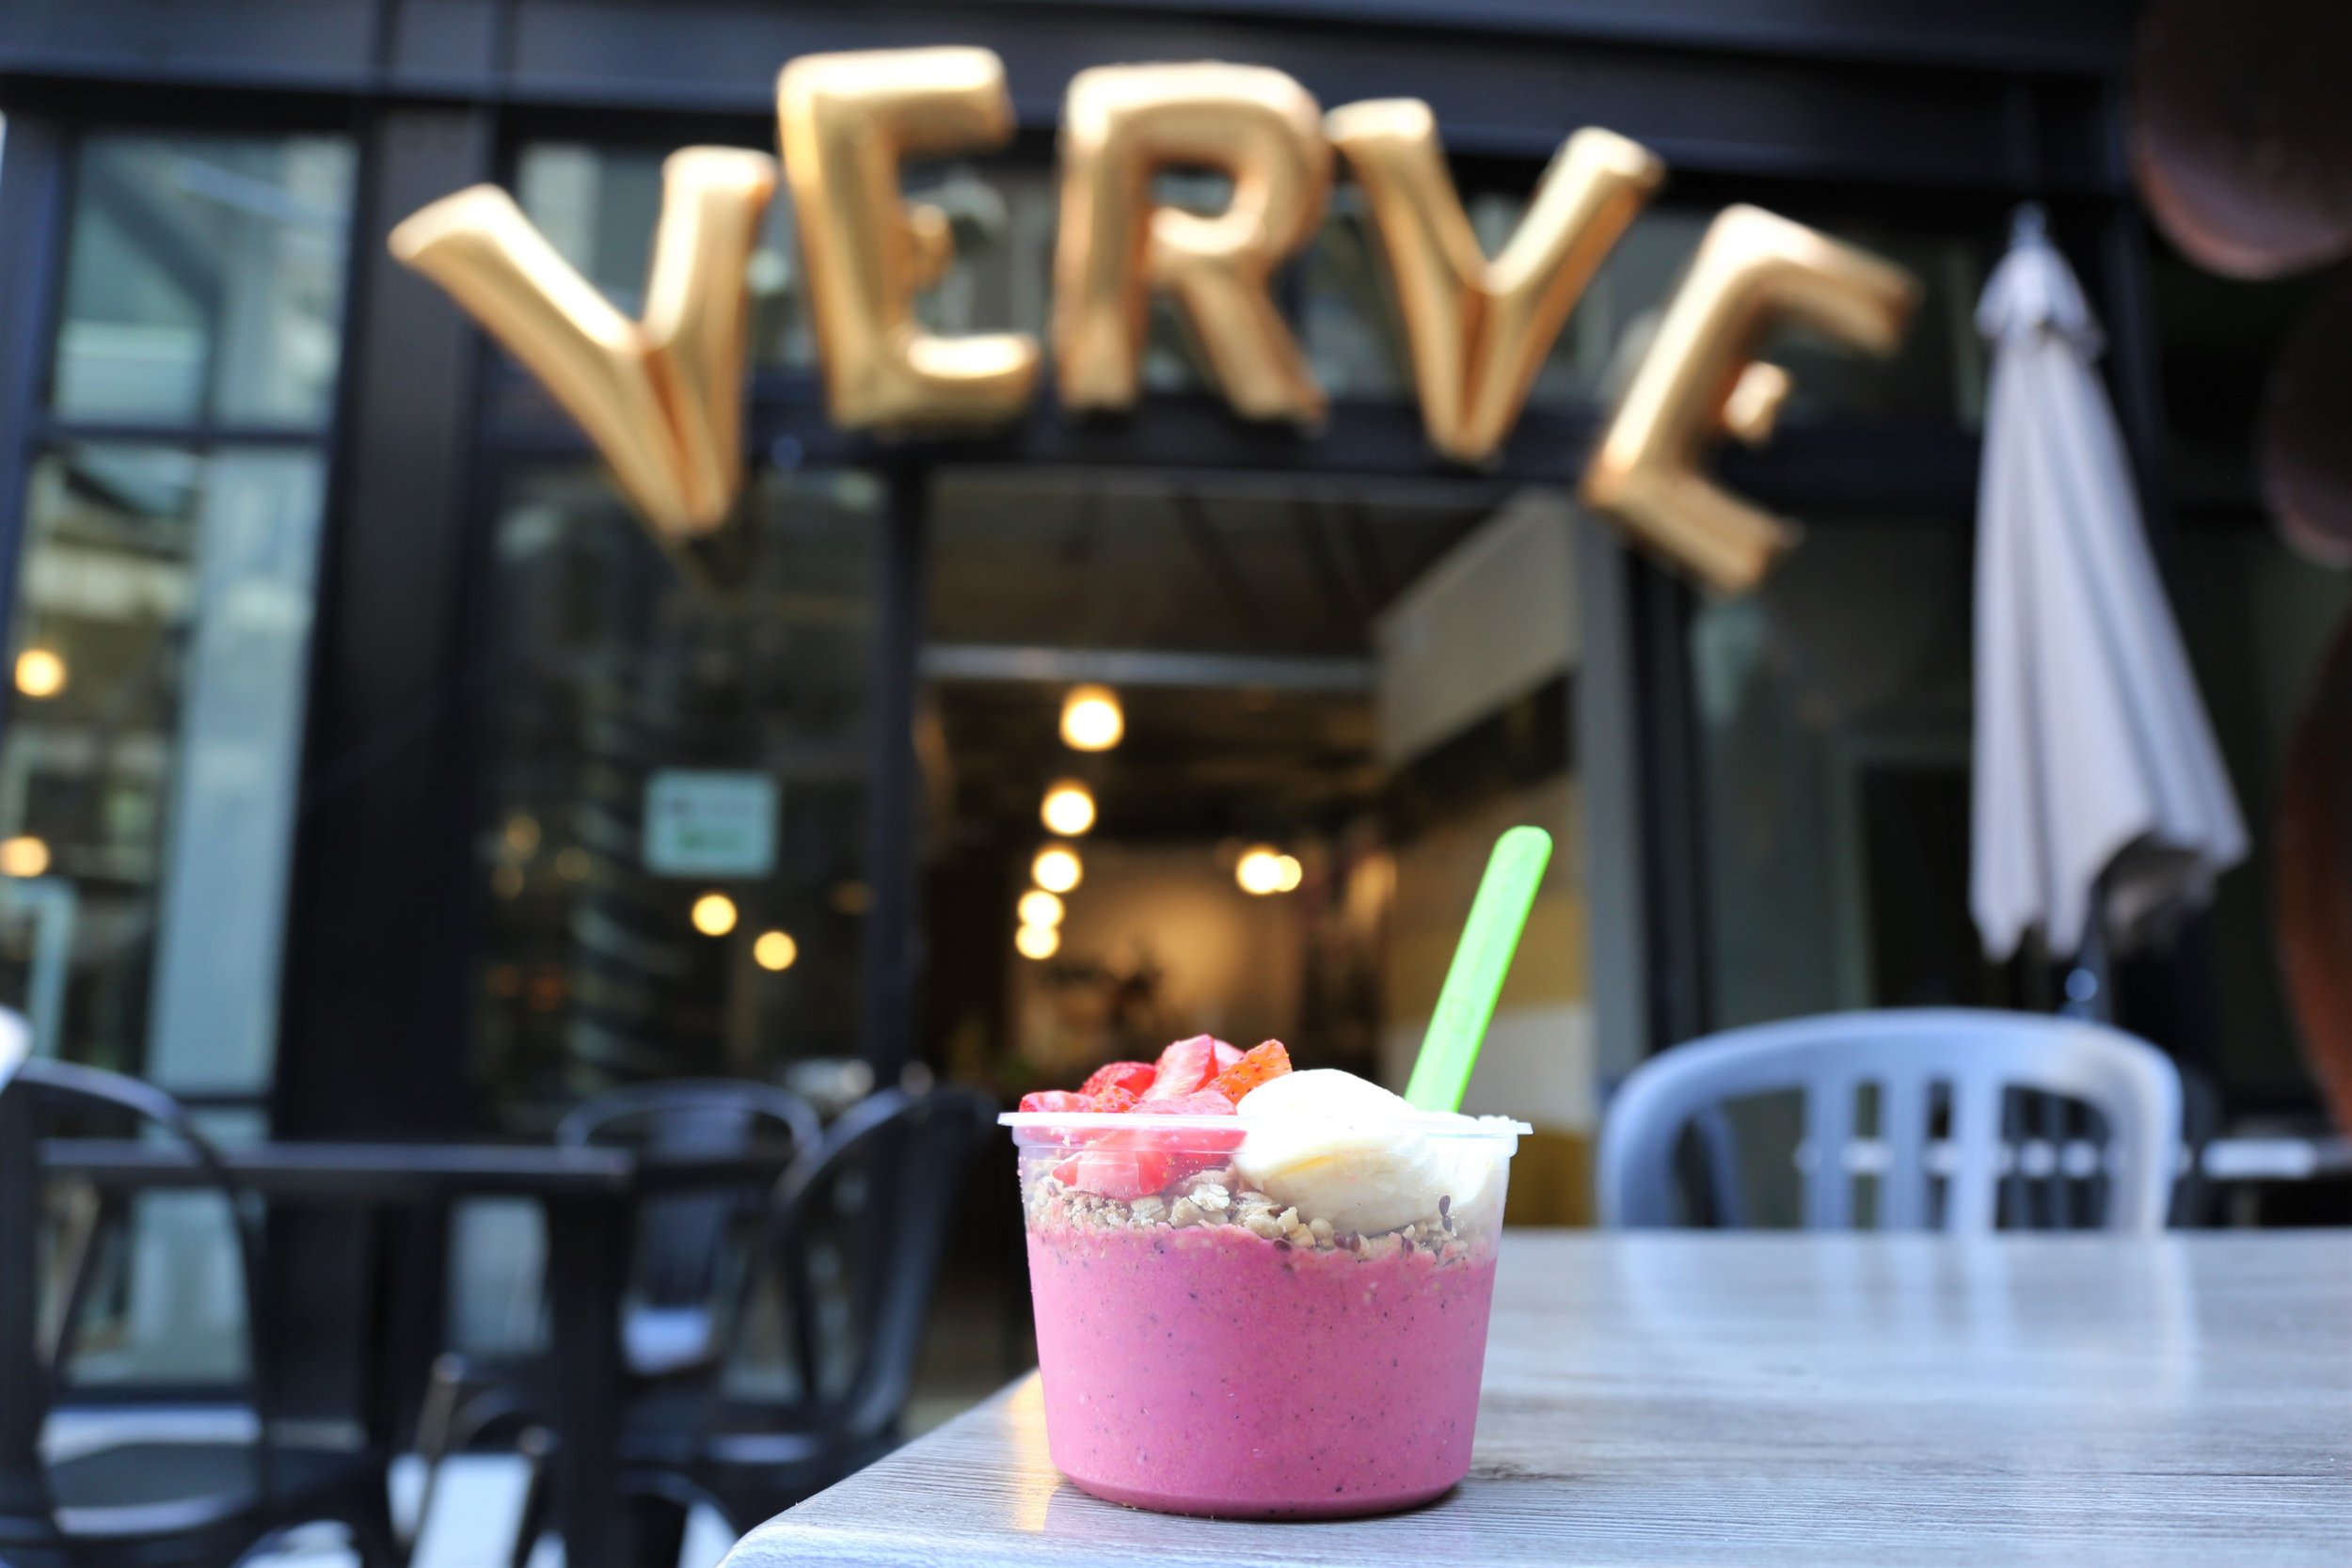 The Beast Mode smoothie bowl from Verve